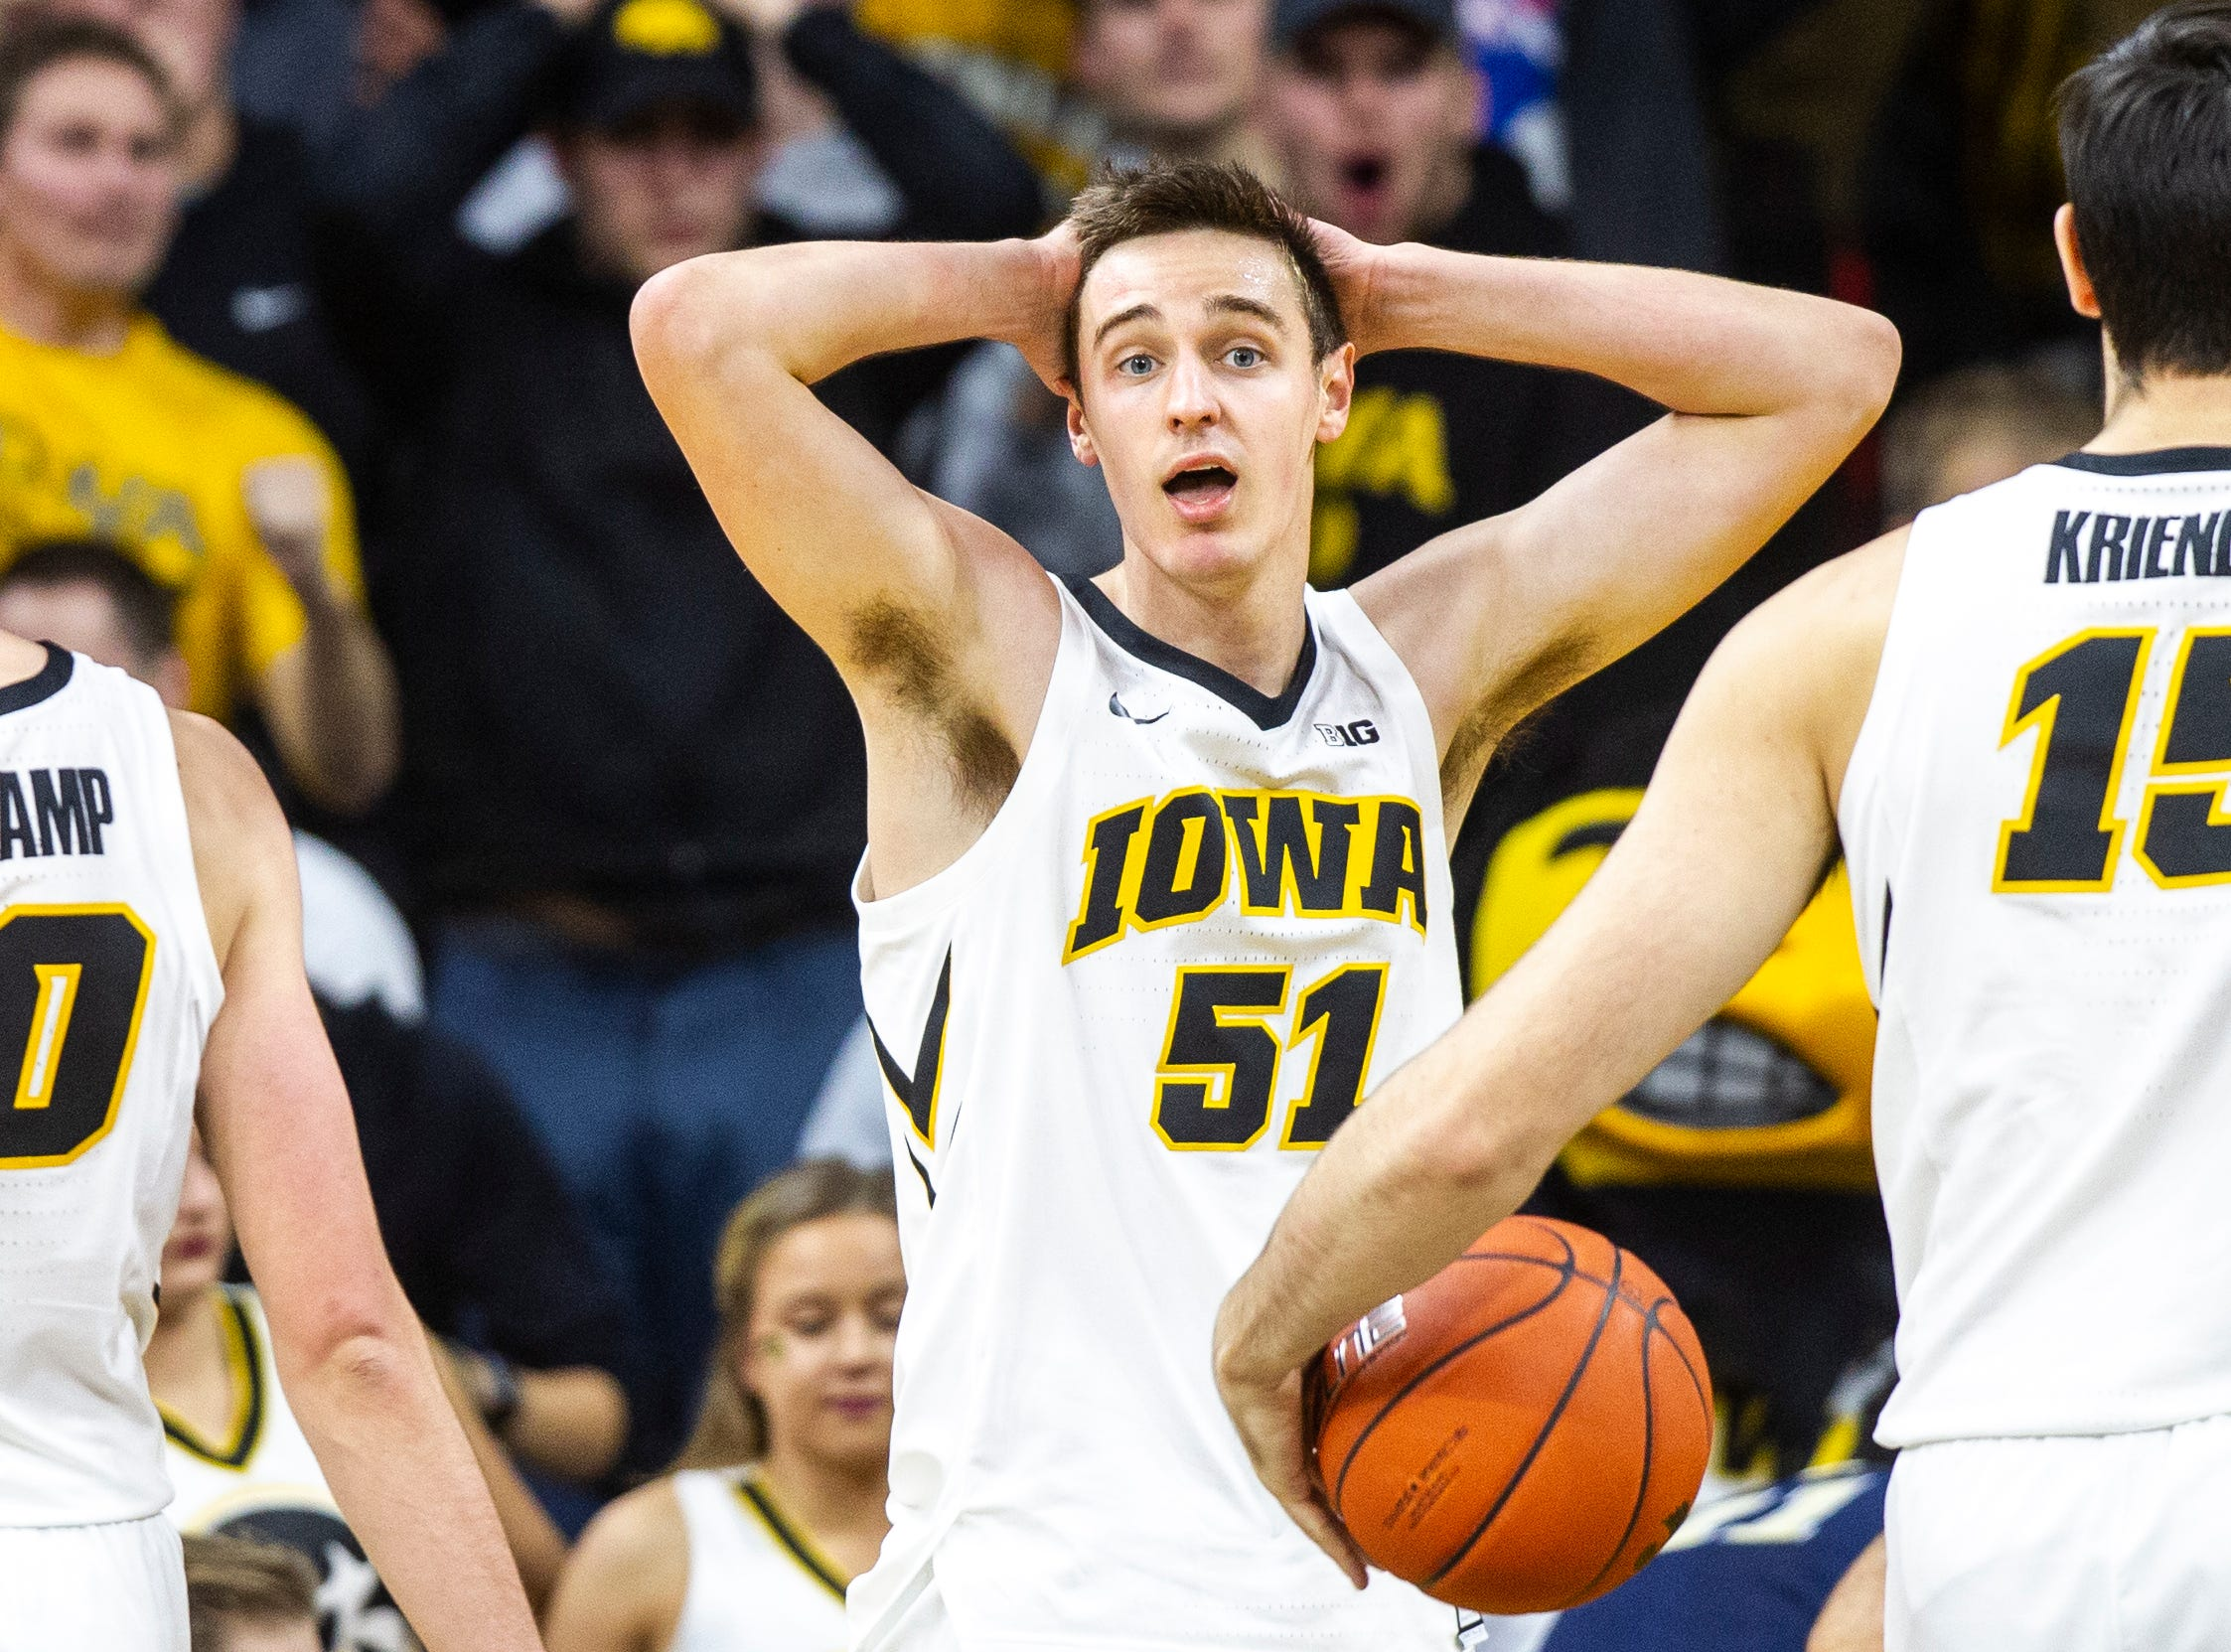 Iowa forward Nicholas Baer (51) reacts after getting called for a foul during a NCAA men's basketball game on Tuesday, Nov. 27, 2018, at Carver-Hawkeye Arena in Iowa City.